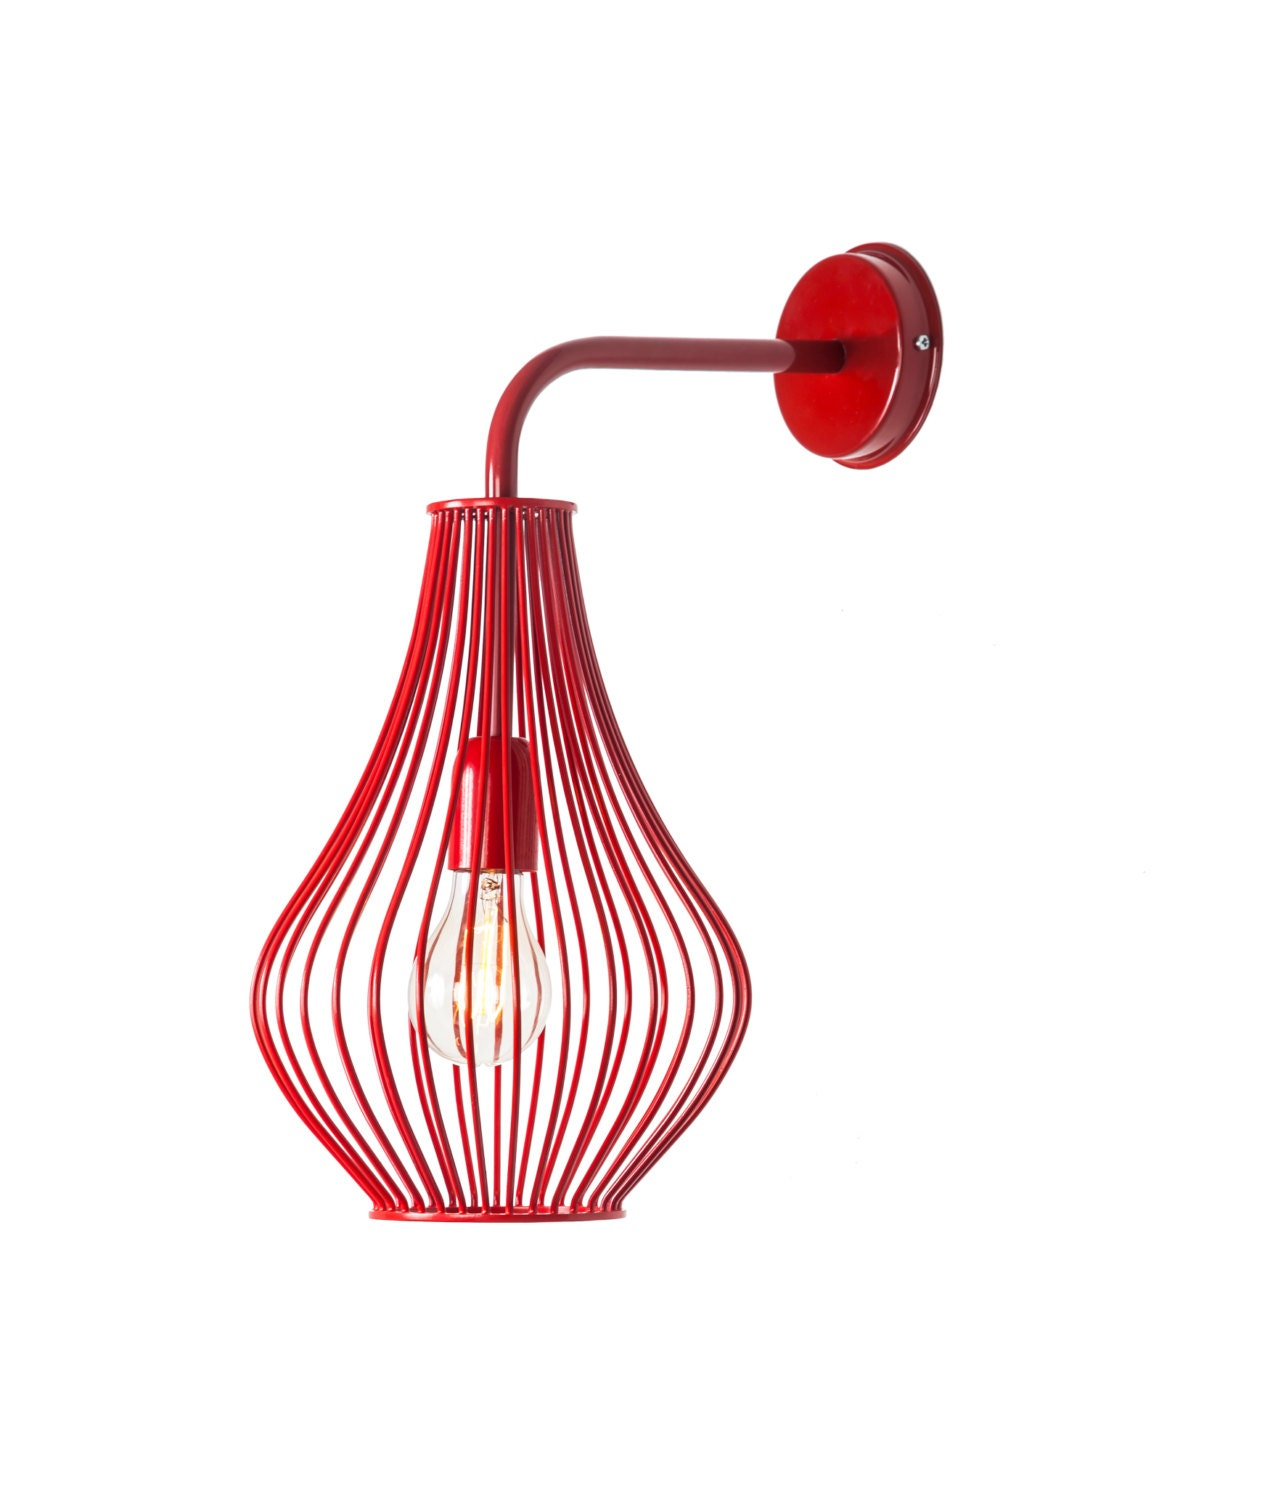 Wall Lamp With Electrical Cord : Red wire wall lamp lighting fixture size 38X49 cm option to